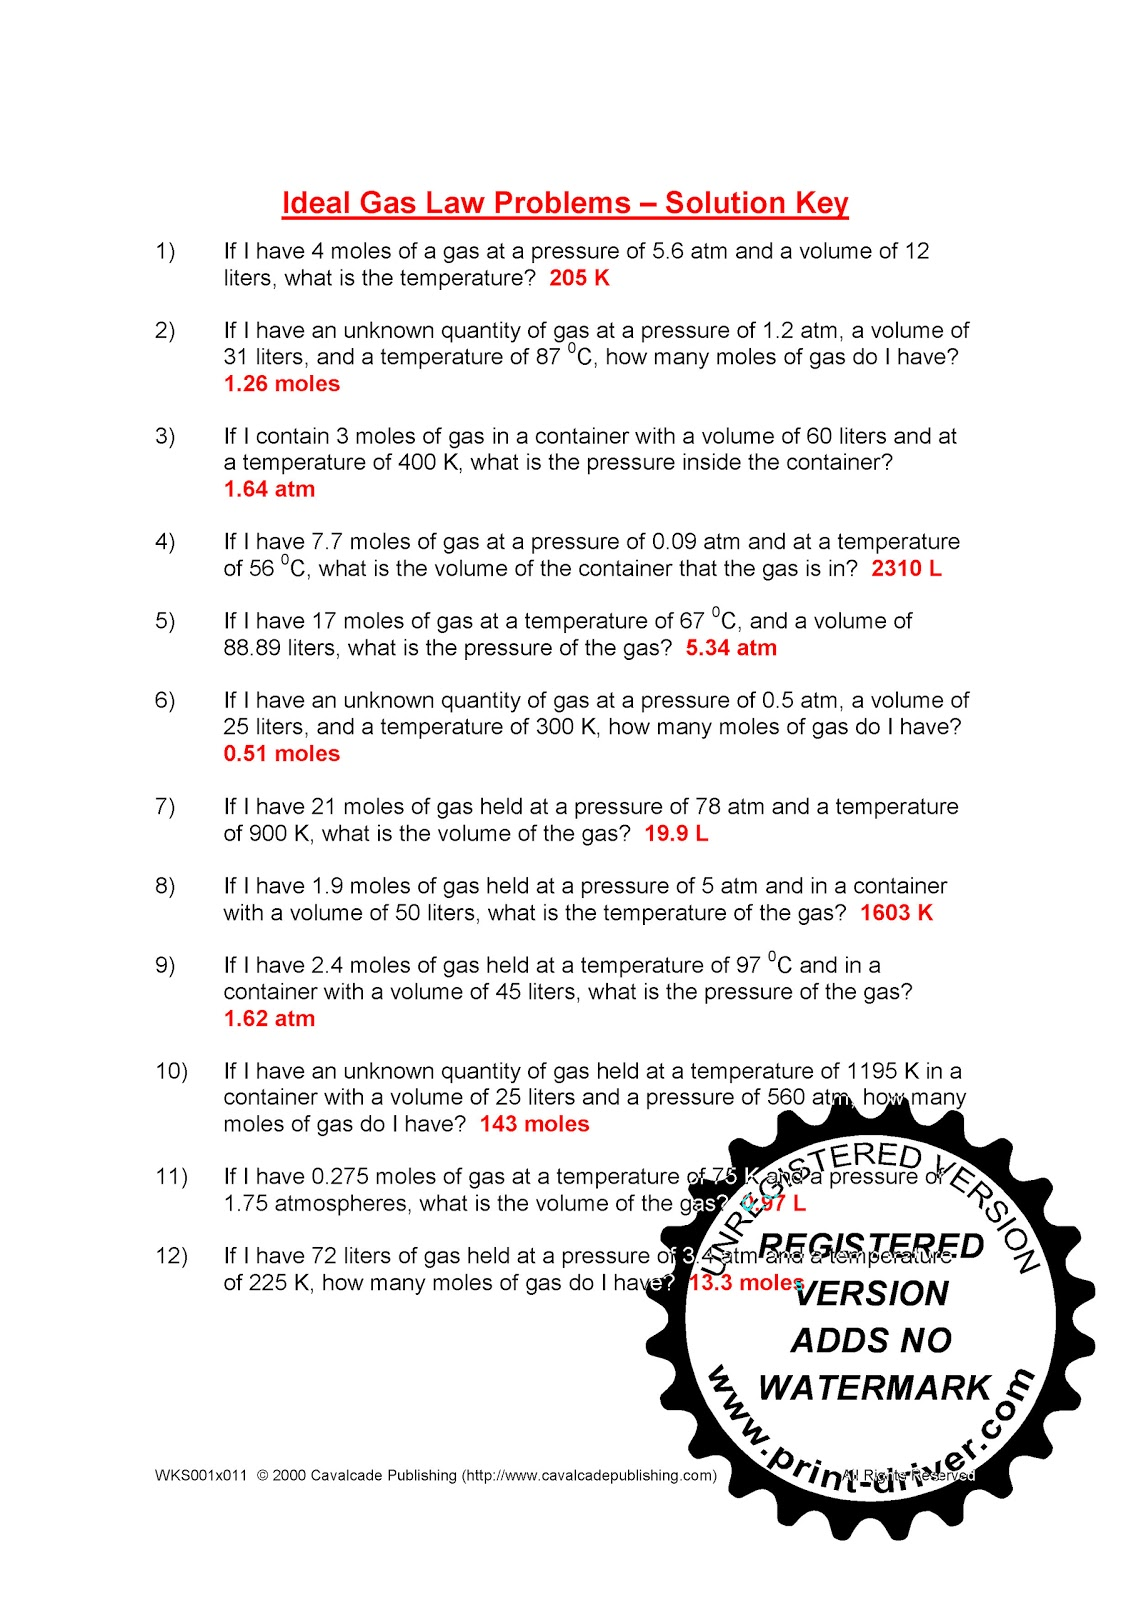 worksheet Gas Laws Worksheet Answer Key worksheet ideal gas law key thedanks for everyone worksheets problems tokyoobserver just worksheet